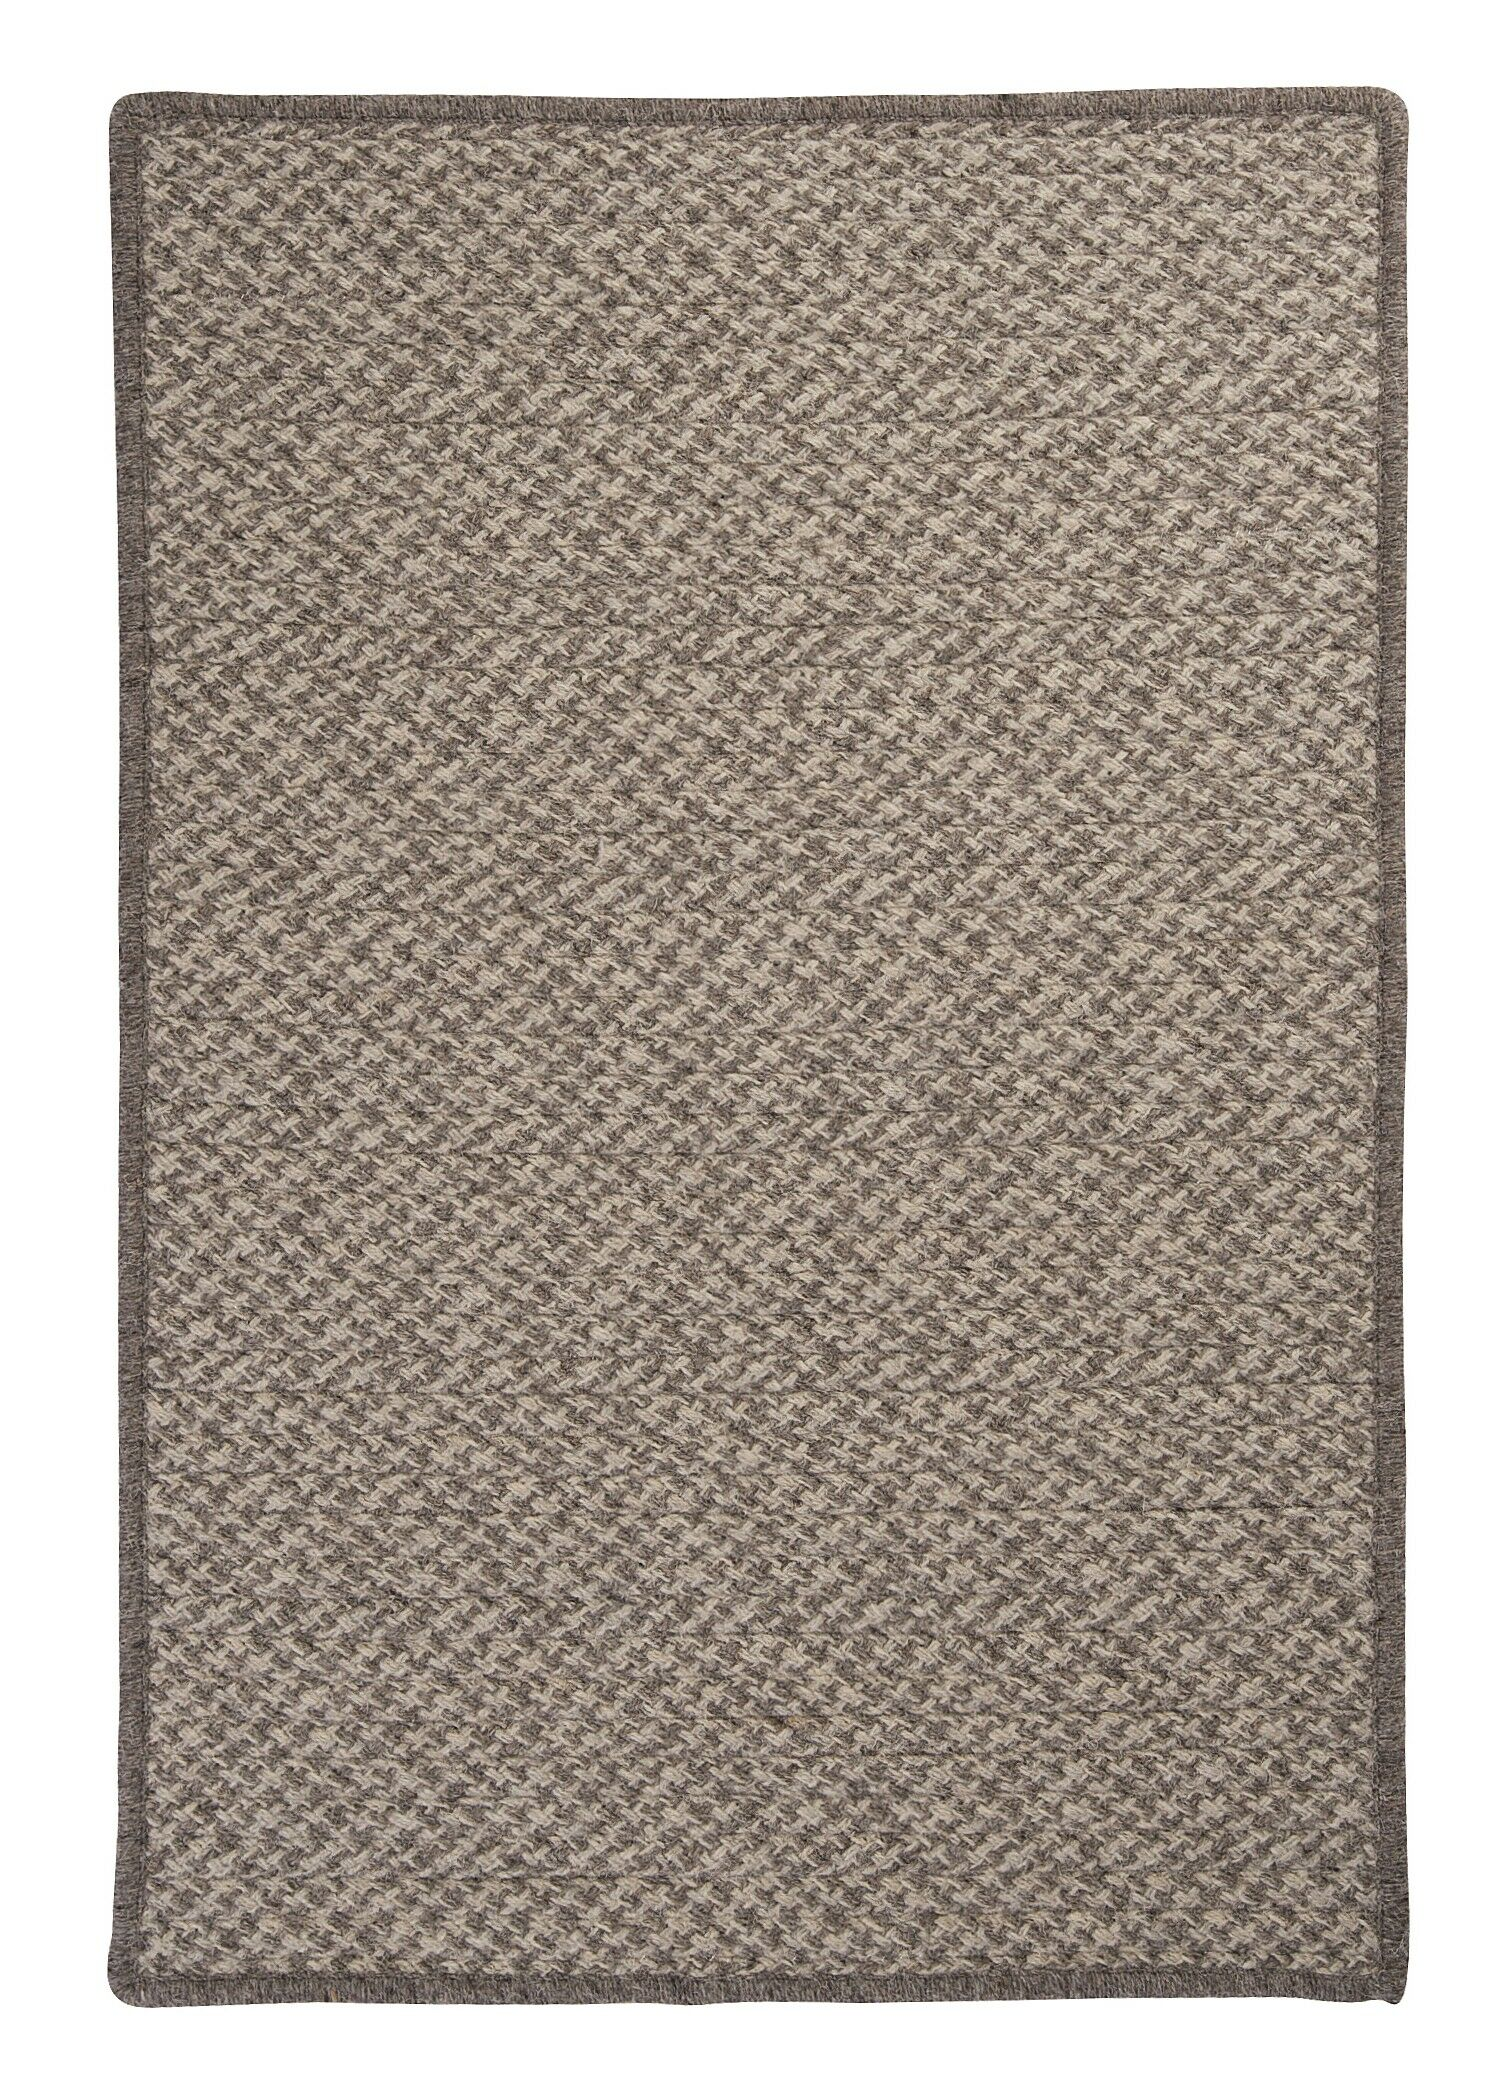 Natural Wool Houndstooth Braided Latte Area Rug Rug Size: Square 6'